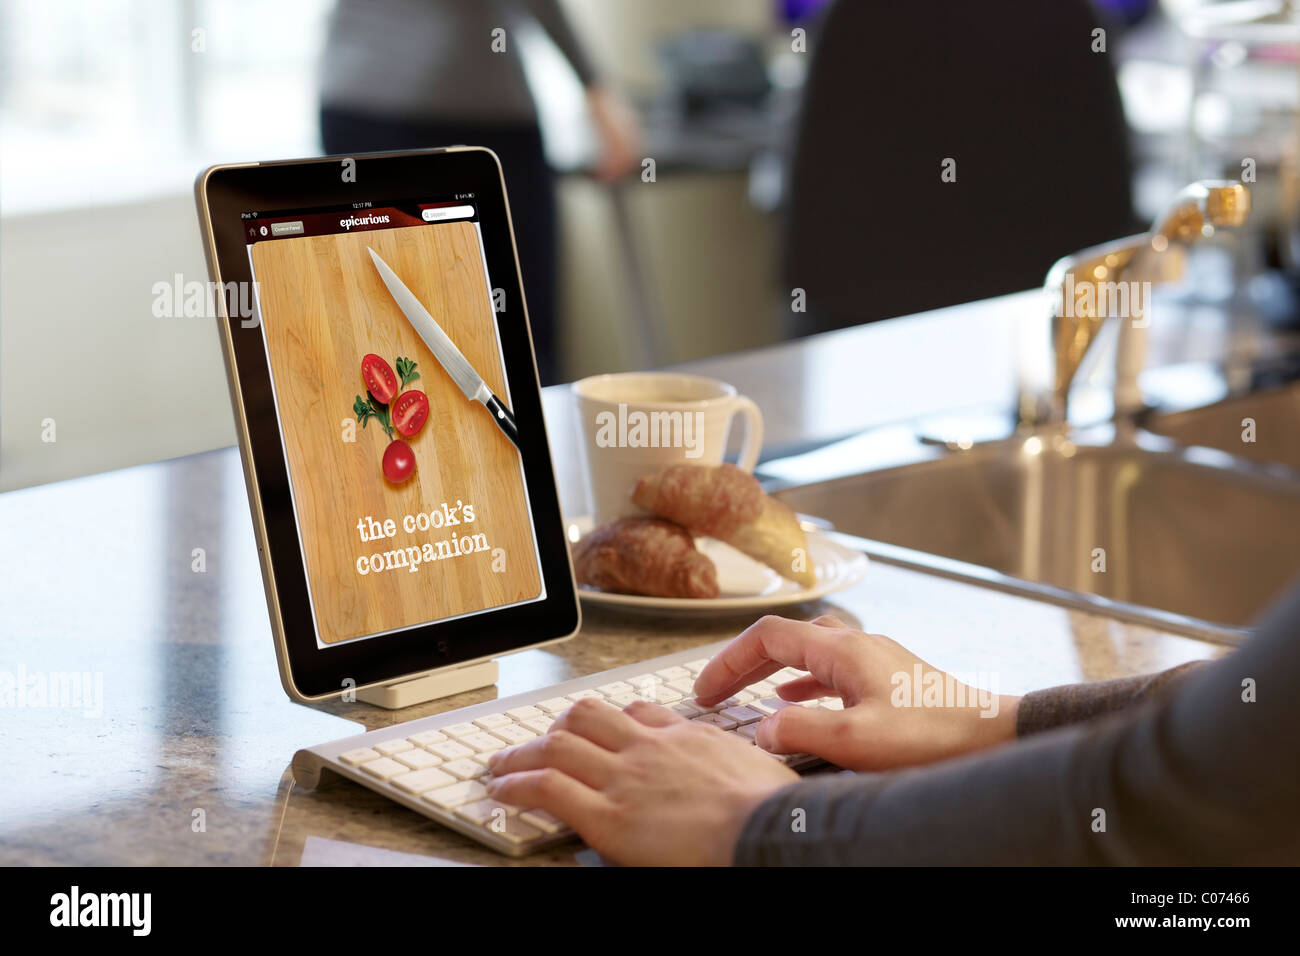 Woman browsing cooking recipe with iPad Epicurious cooking app - Stock Image